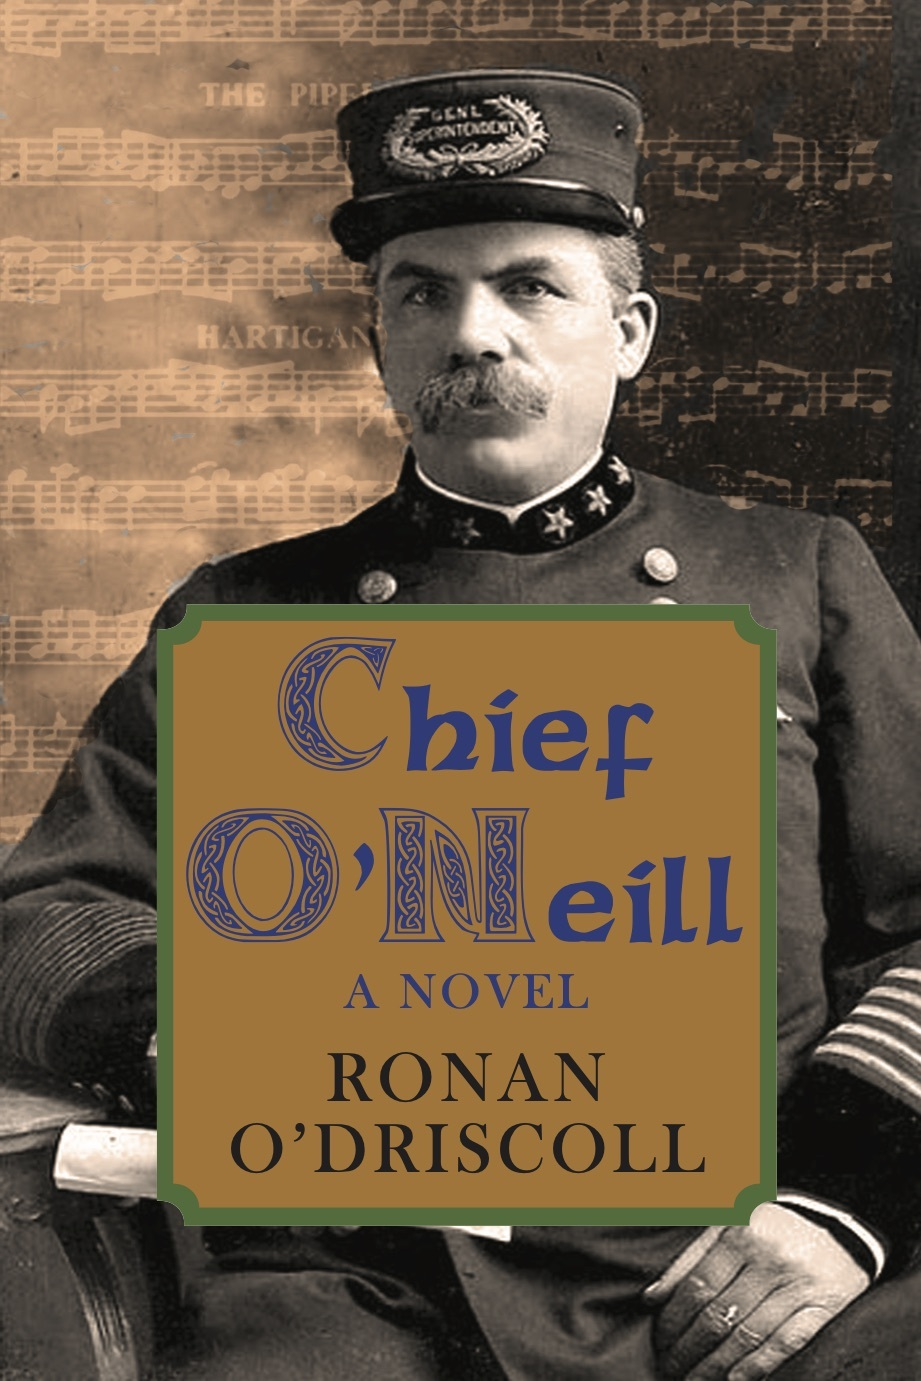 Cover odriscoll oneill2 1